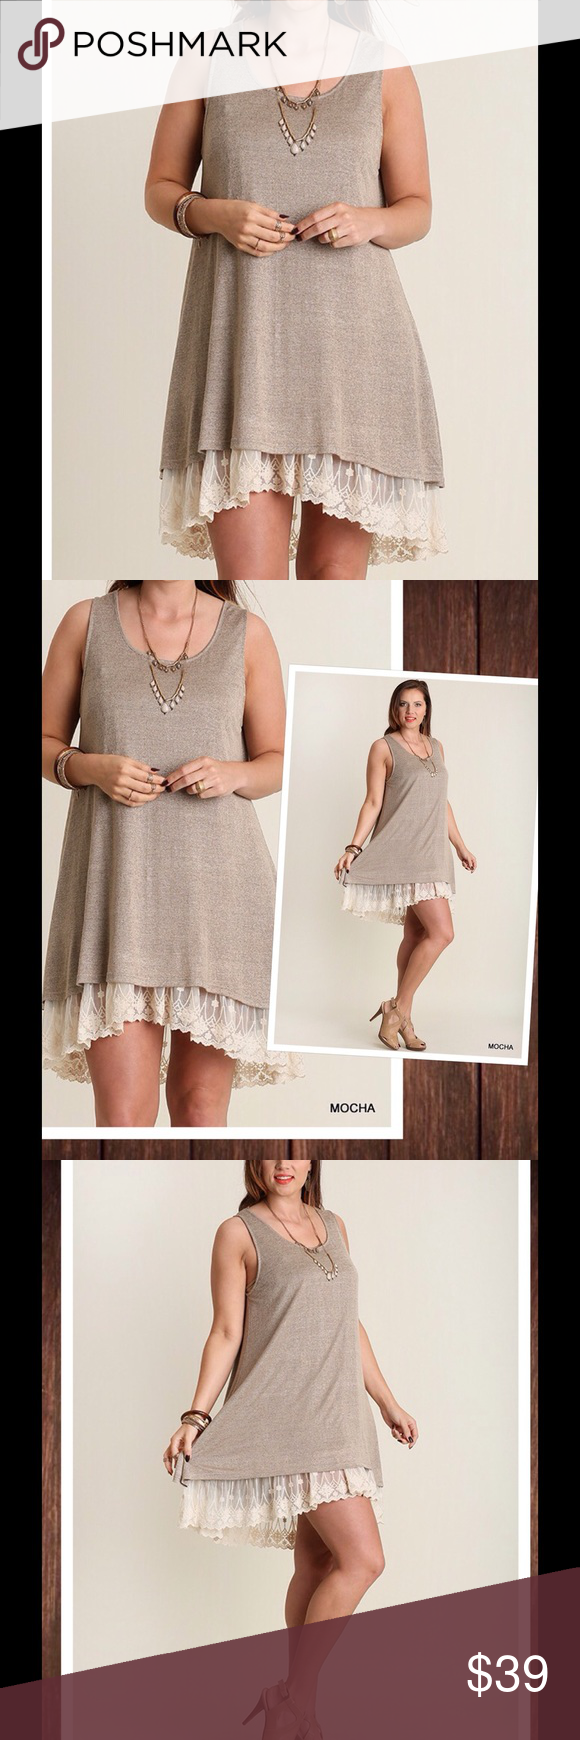 "Plus Size Dress Lace Extender XL 1X 2X Restock Wed Lined knit tank tunic dress with cream lace trim and high low hem. Transitional piece. Wear year round. Wear this with a denim jacket, kimono, heels, or boots. Super soft and comfy material 60% cotton and 40% polyester. We measure these in house so you get the right fit.  XL: 22"" from armpit to armpit. Length front 34"" and back 38""  1X: 23"" from armpit to armpit. Length front 34.5"" and back 38.5""  2X: 24"" from armpit to armpit. Length front…"